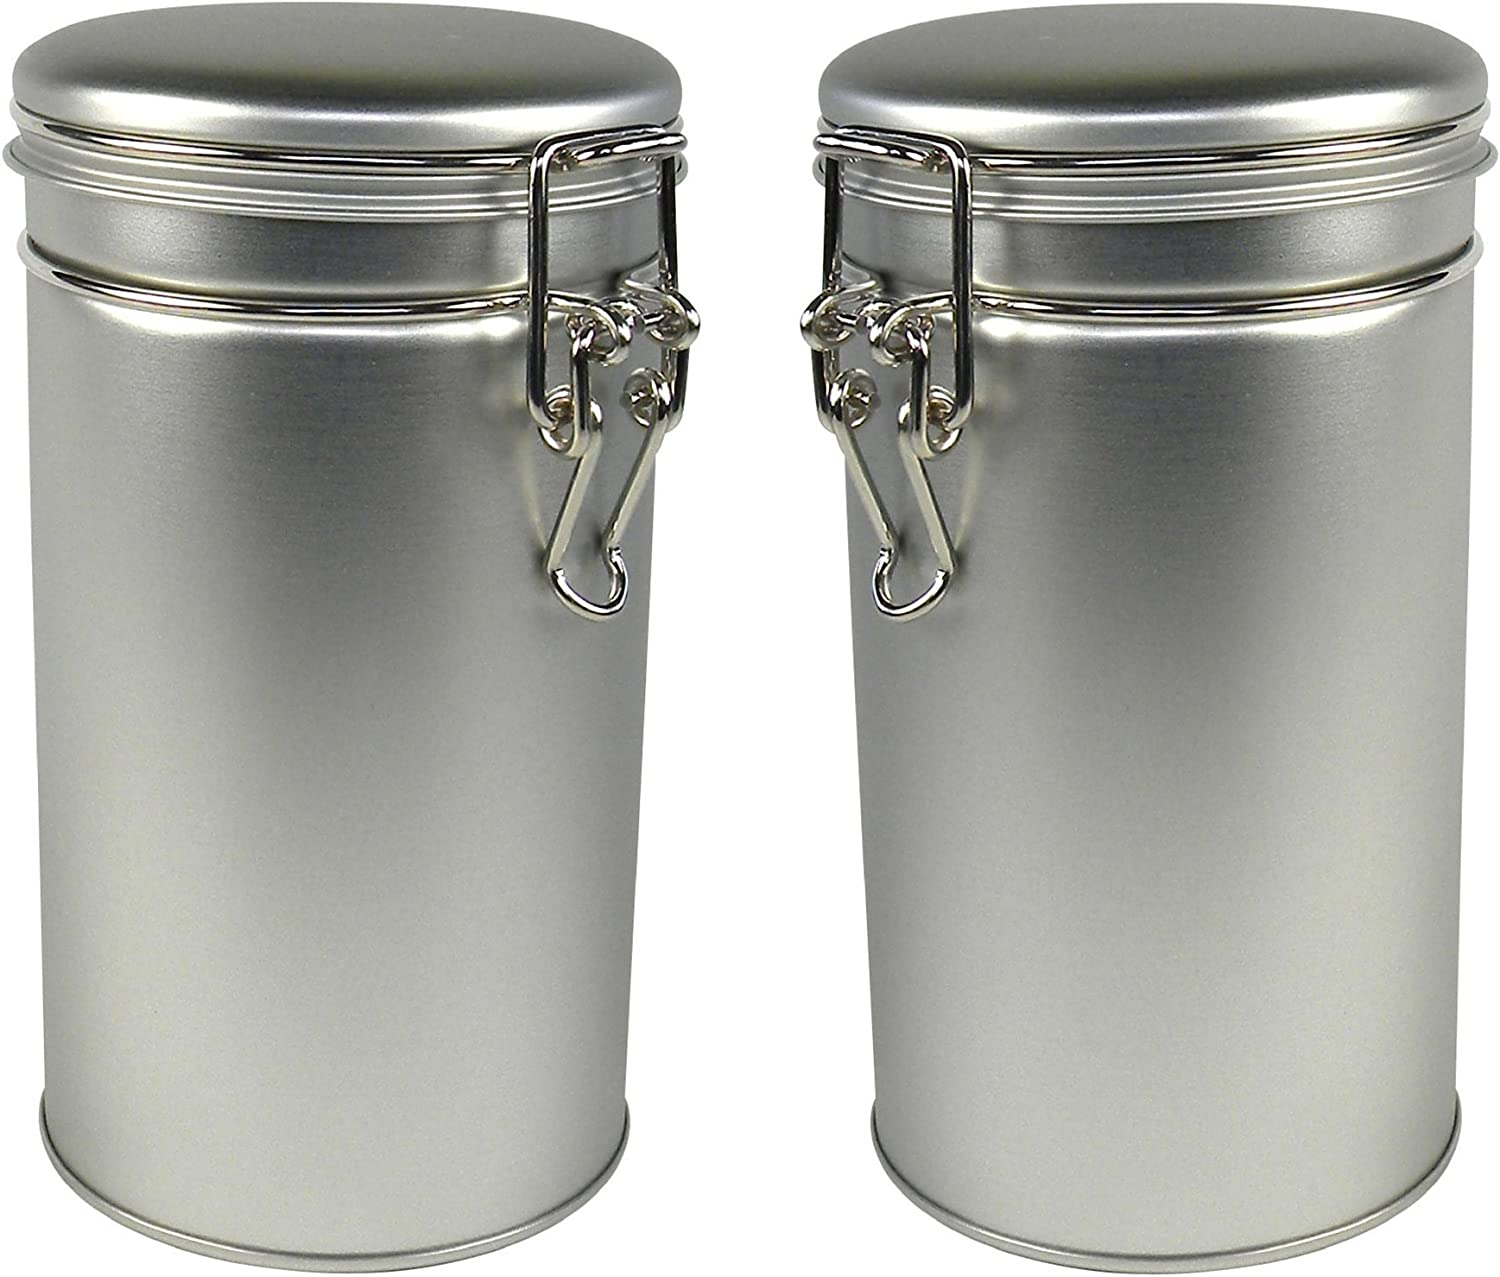 """Thistle Moon 2 PC Metal Tea Coffee and Spice Tin Set – 12 Ounce Airtight Round Cannisters with Latch Lids – 6.5"""" x 3.6"""" Containers for Tea, Herbs, or Seasoning Storage"""